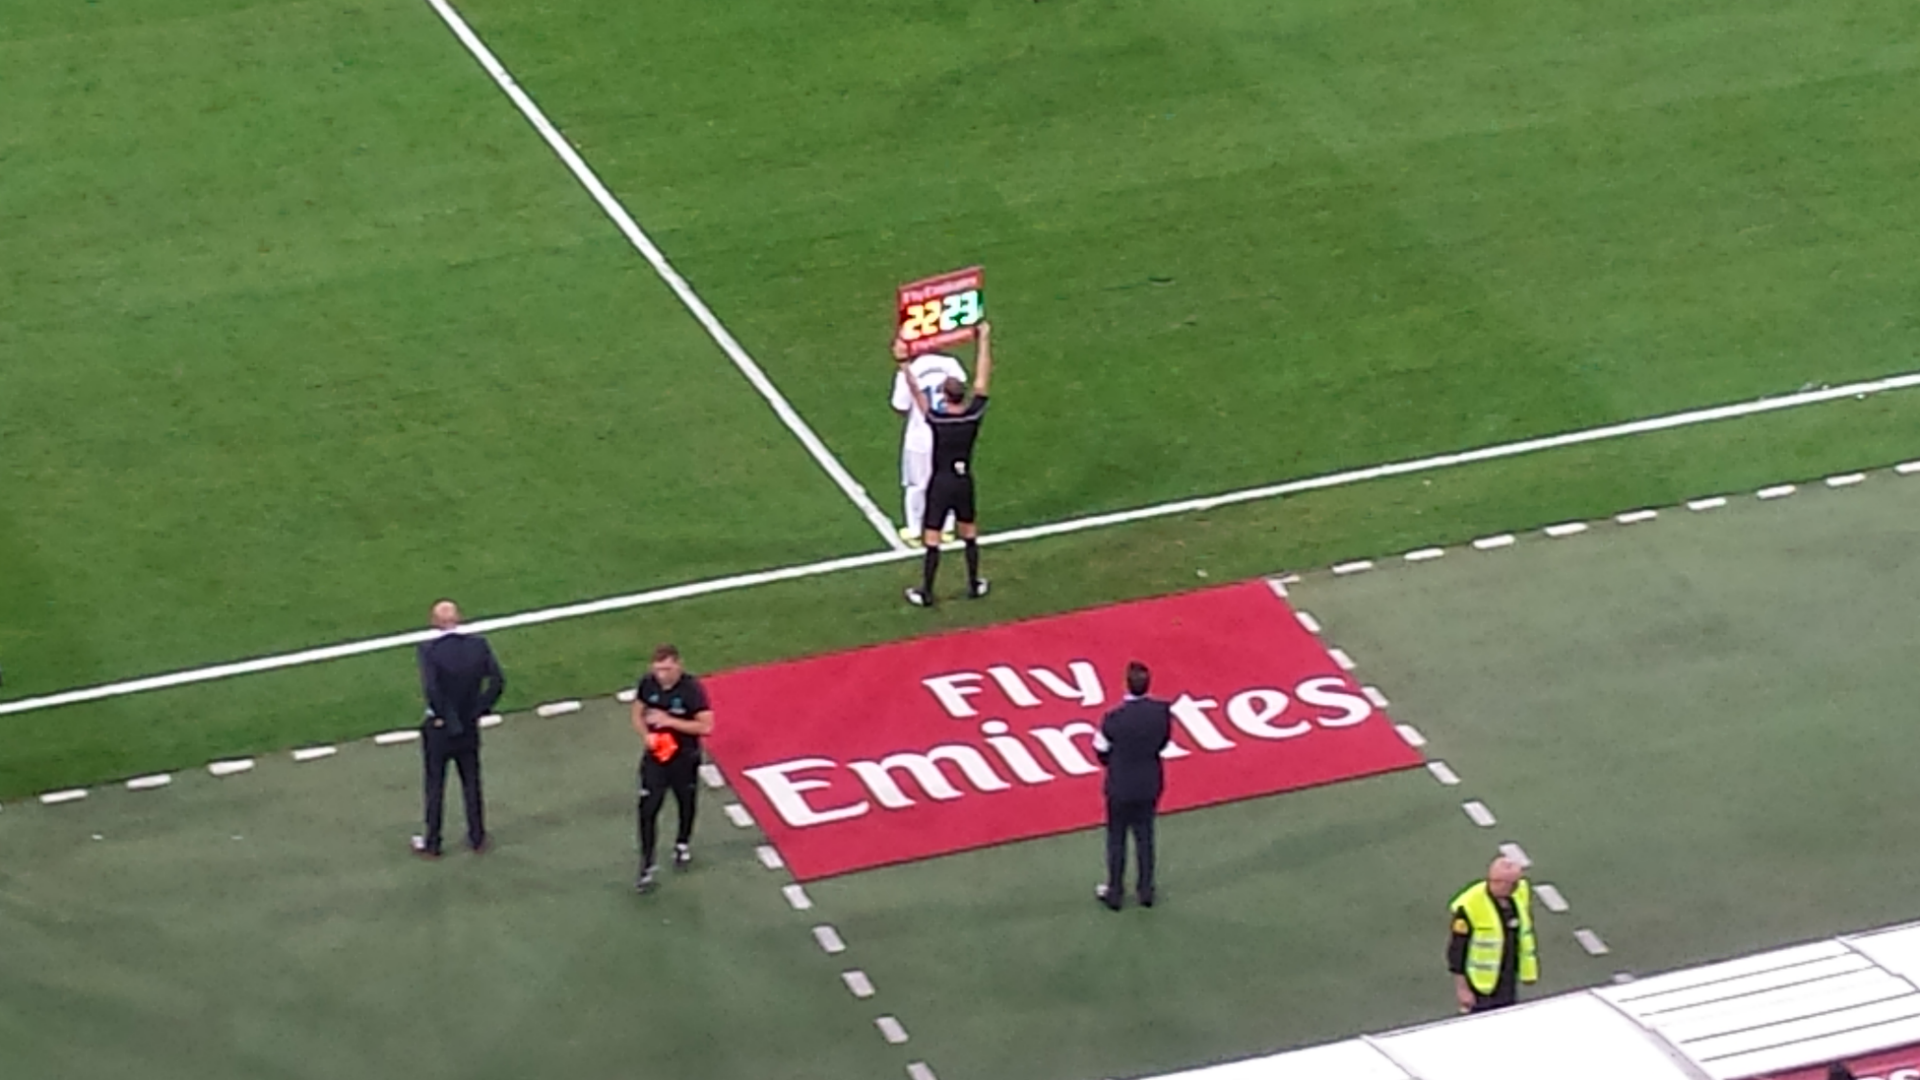 Marcelo taking part in a substitution at Santiago Bernabeu stadium